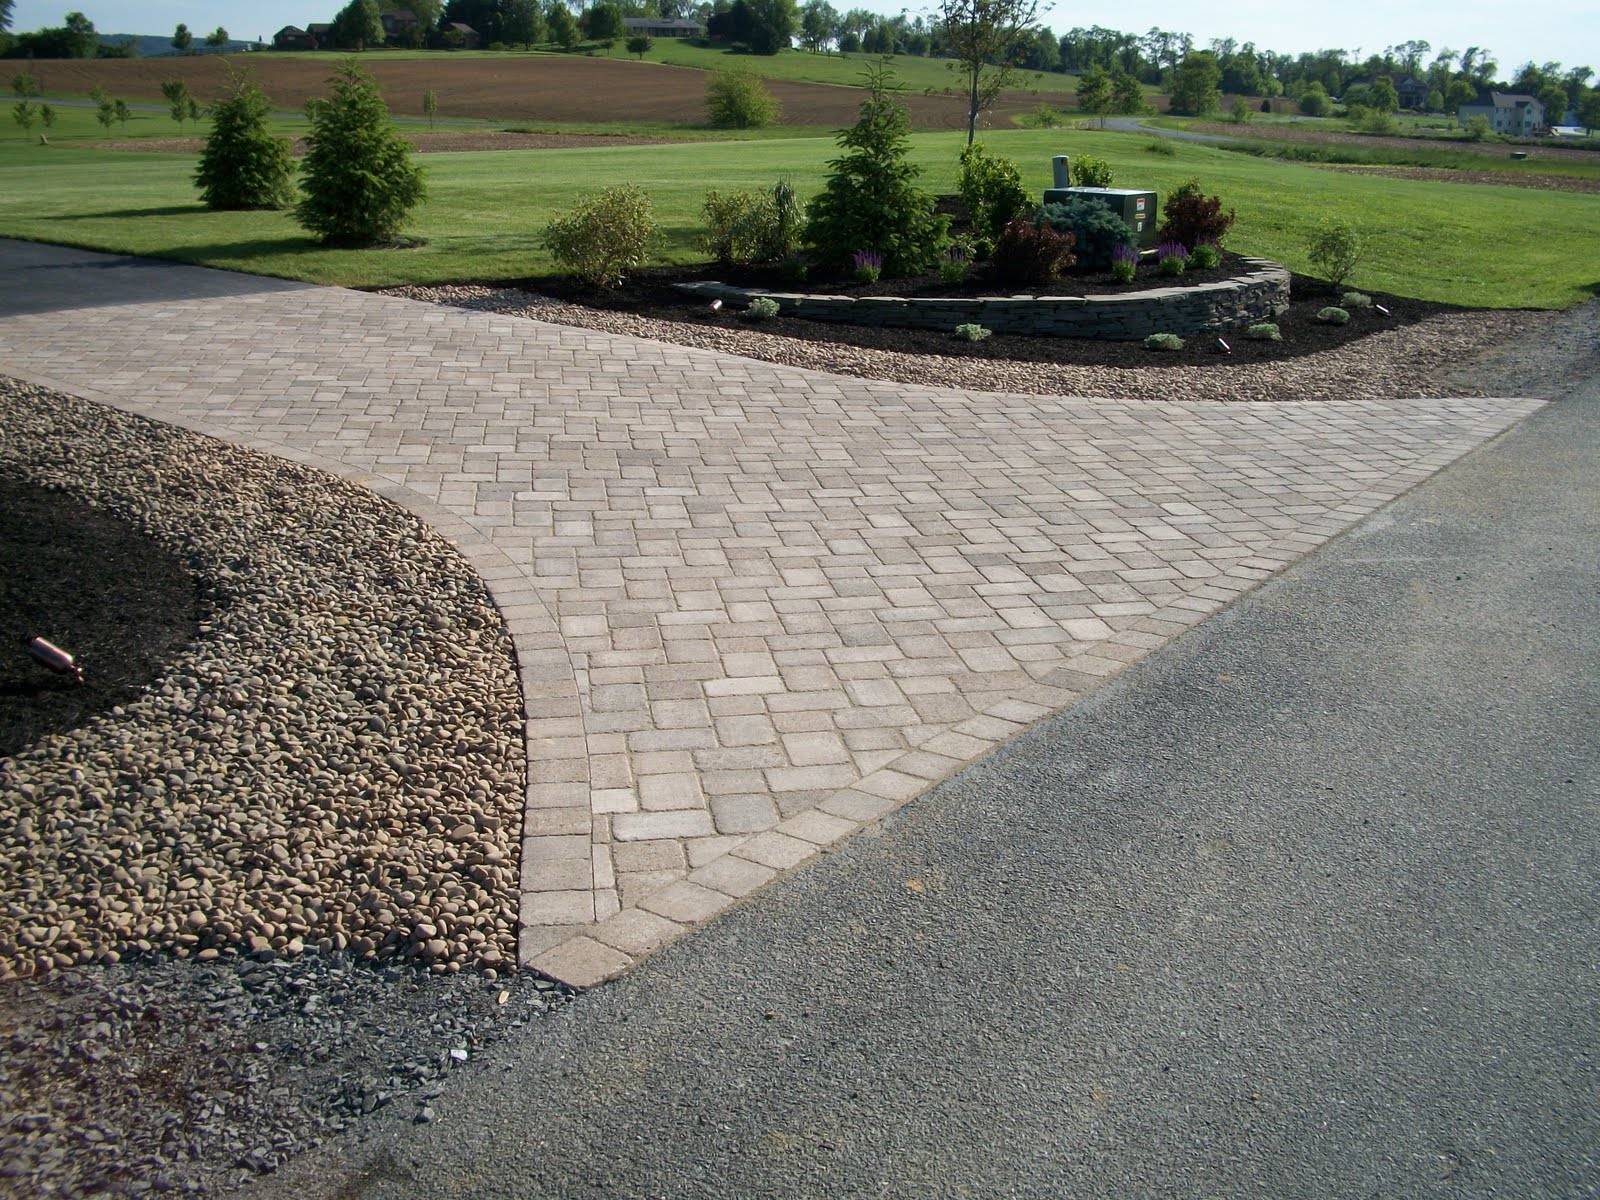 Driveway Entrance Just Completed Together Some Landscaping